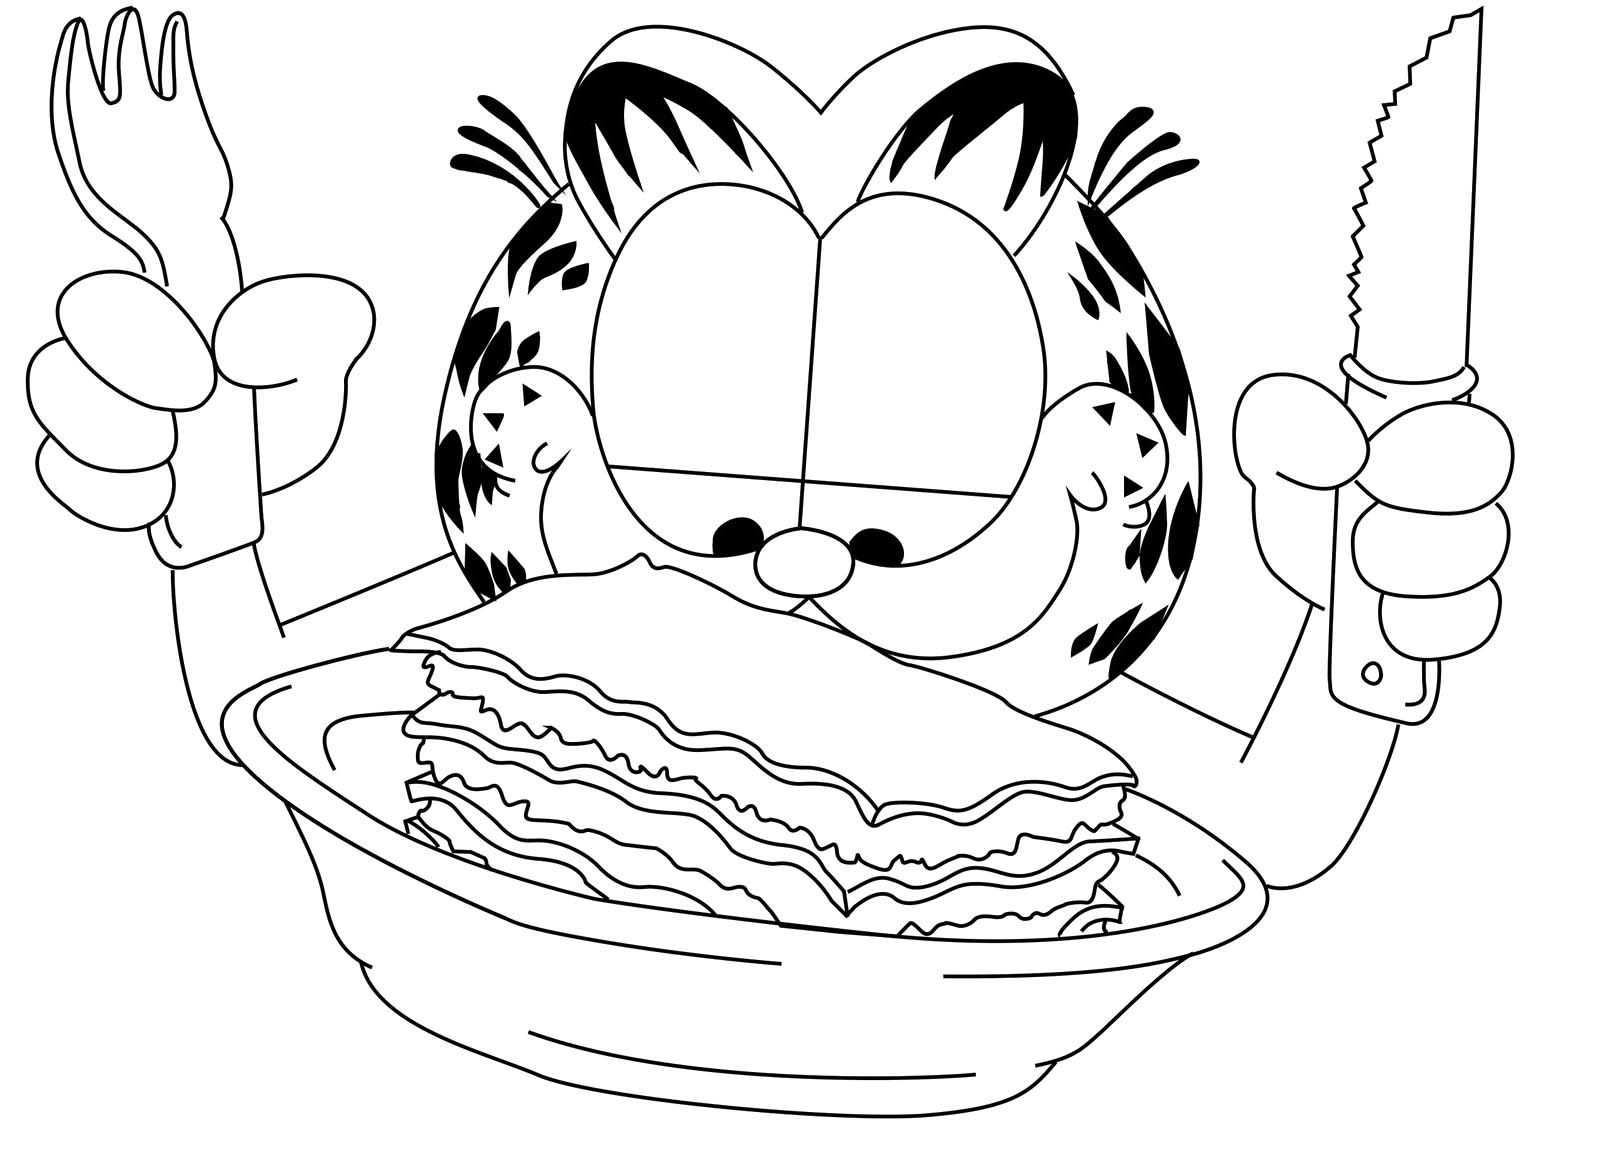 Libros De Garfield Garfield Wanted To Cut The Cake Using A Knife And Fork